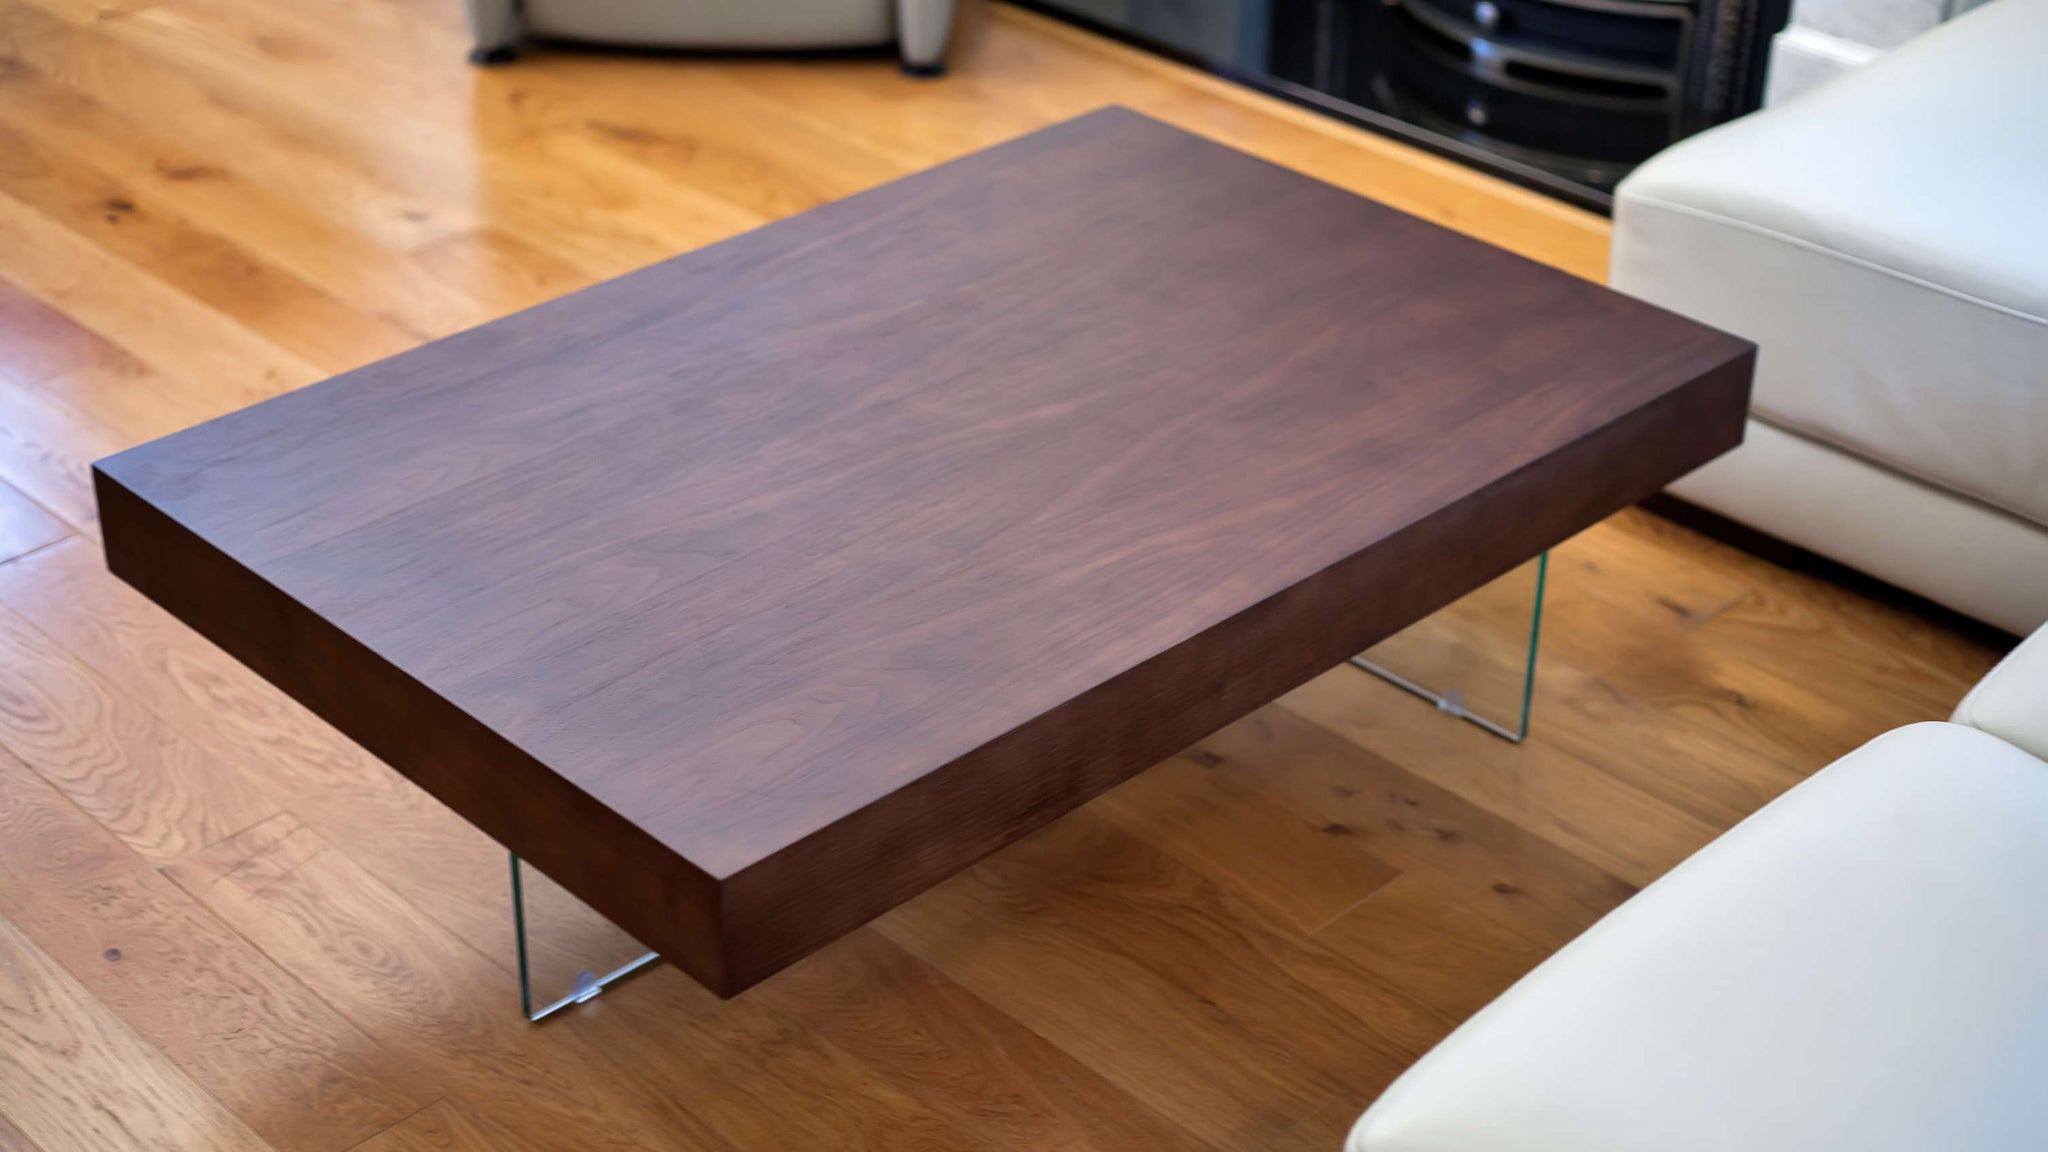 rectangular wood veneer table with two glass legs